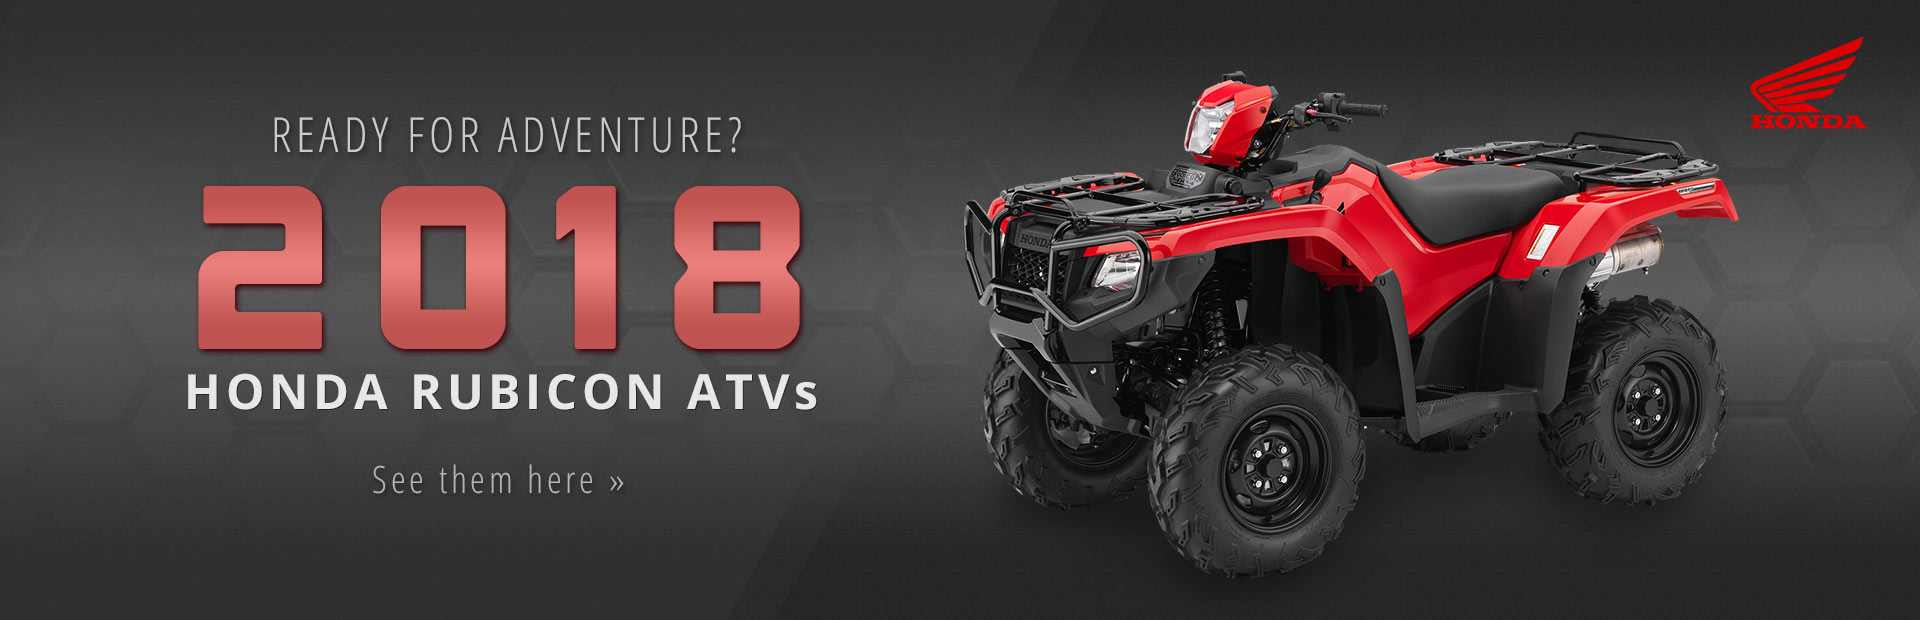 2018 Honda Rubicon ATVs: Click here to view the models.